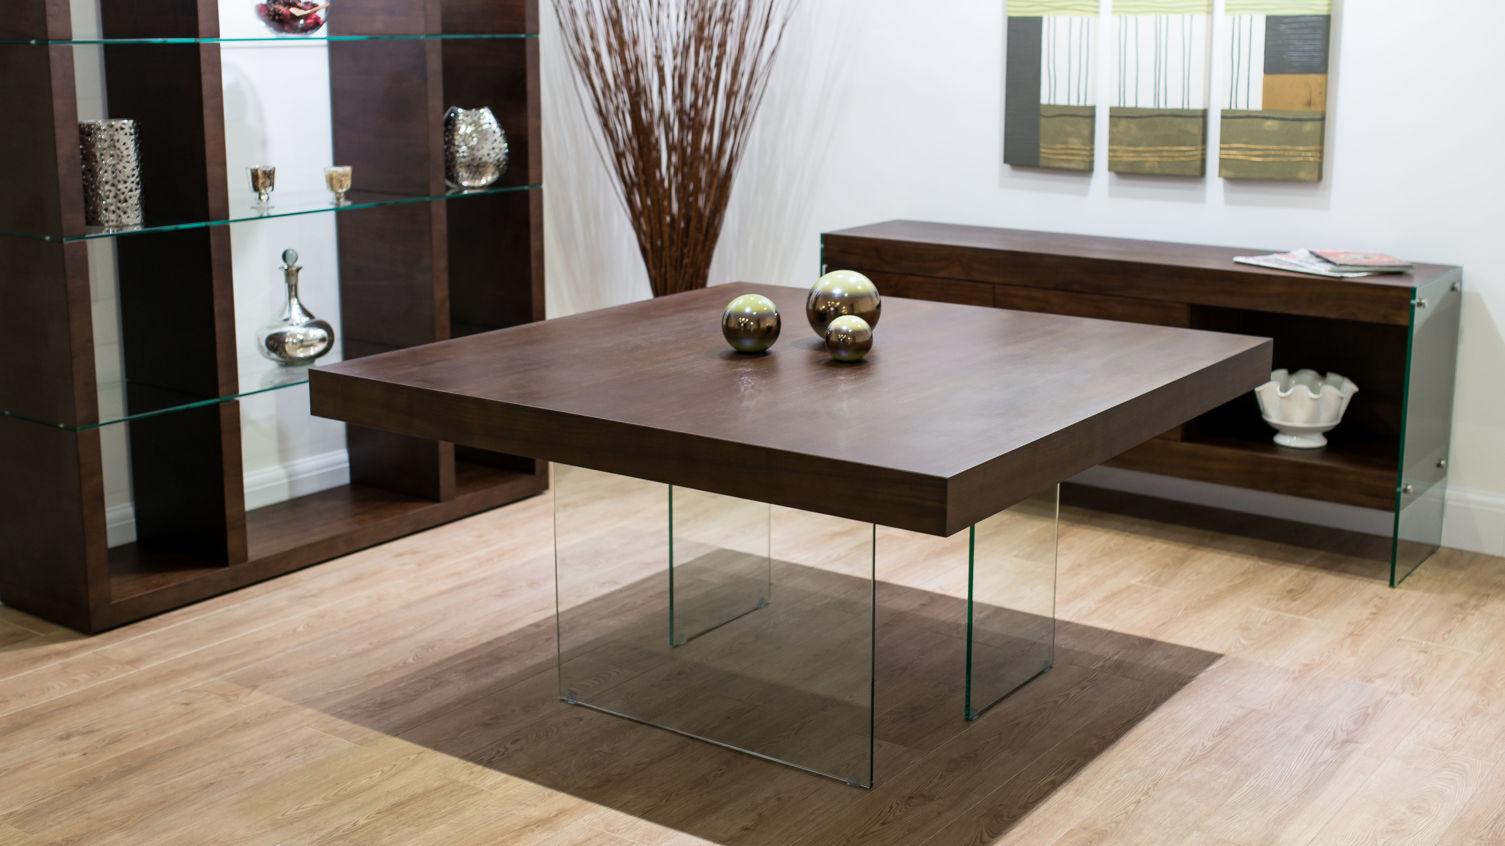 square kitchen table seats 8 square kitchen tables Square kitchen table seats 8 Dining Table Dimensions Dining Room Table Dimensions Round Dining